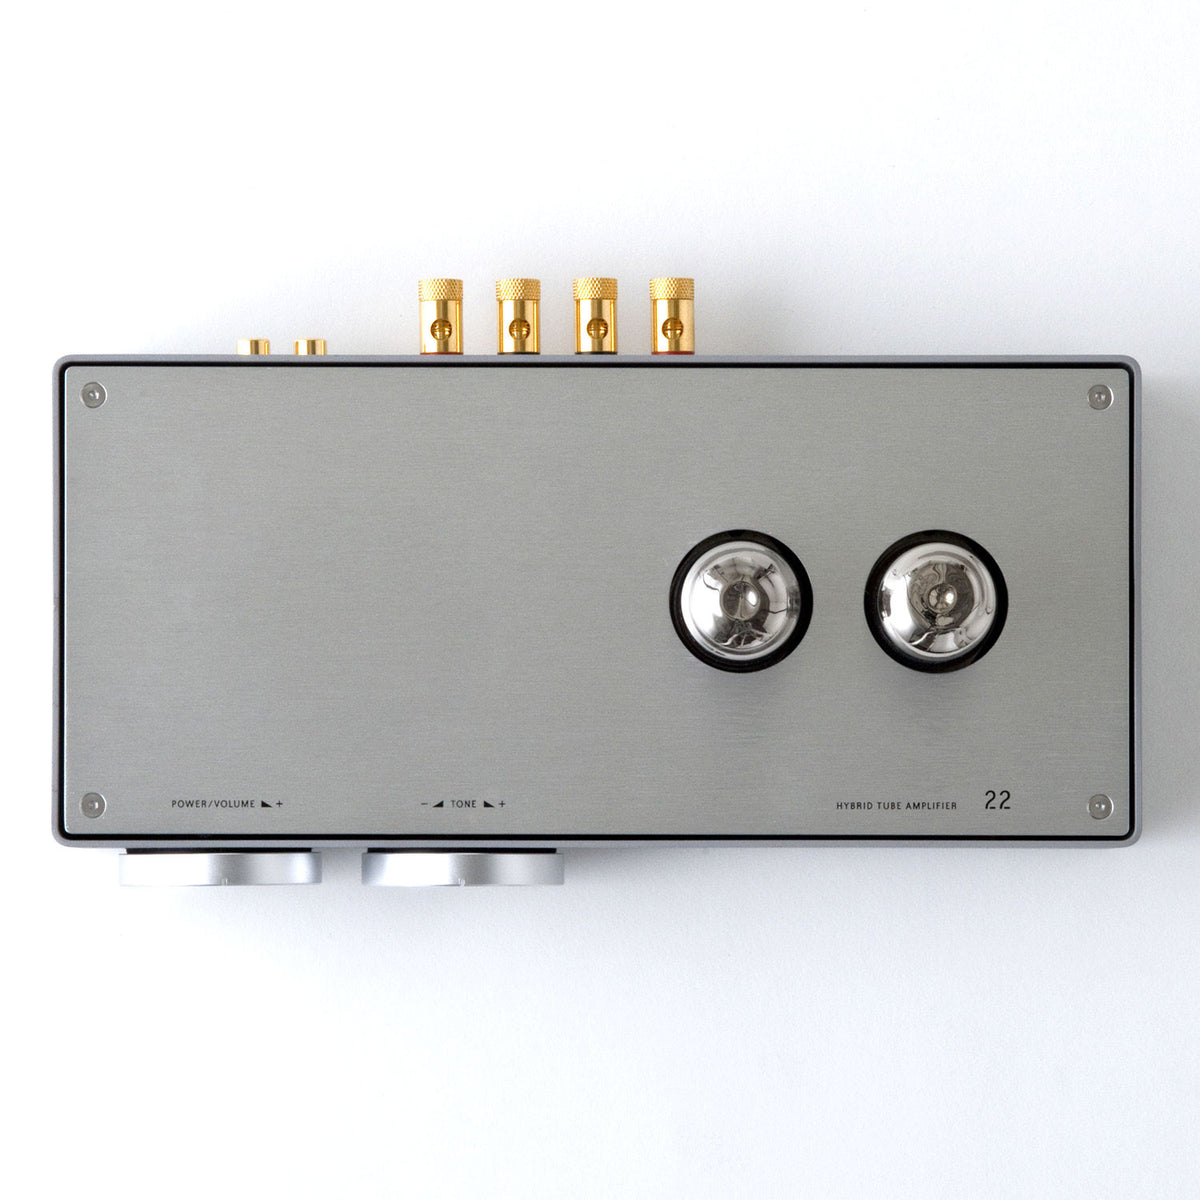 EK Japan: 22 Hybrid Tube Amplifier top